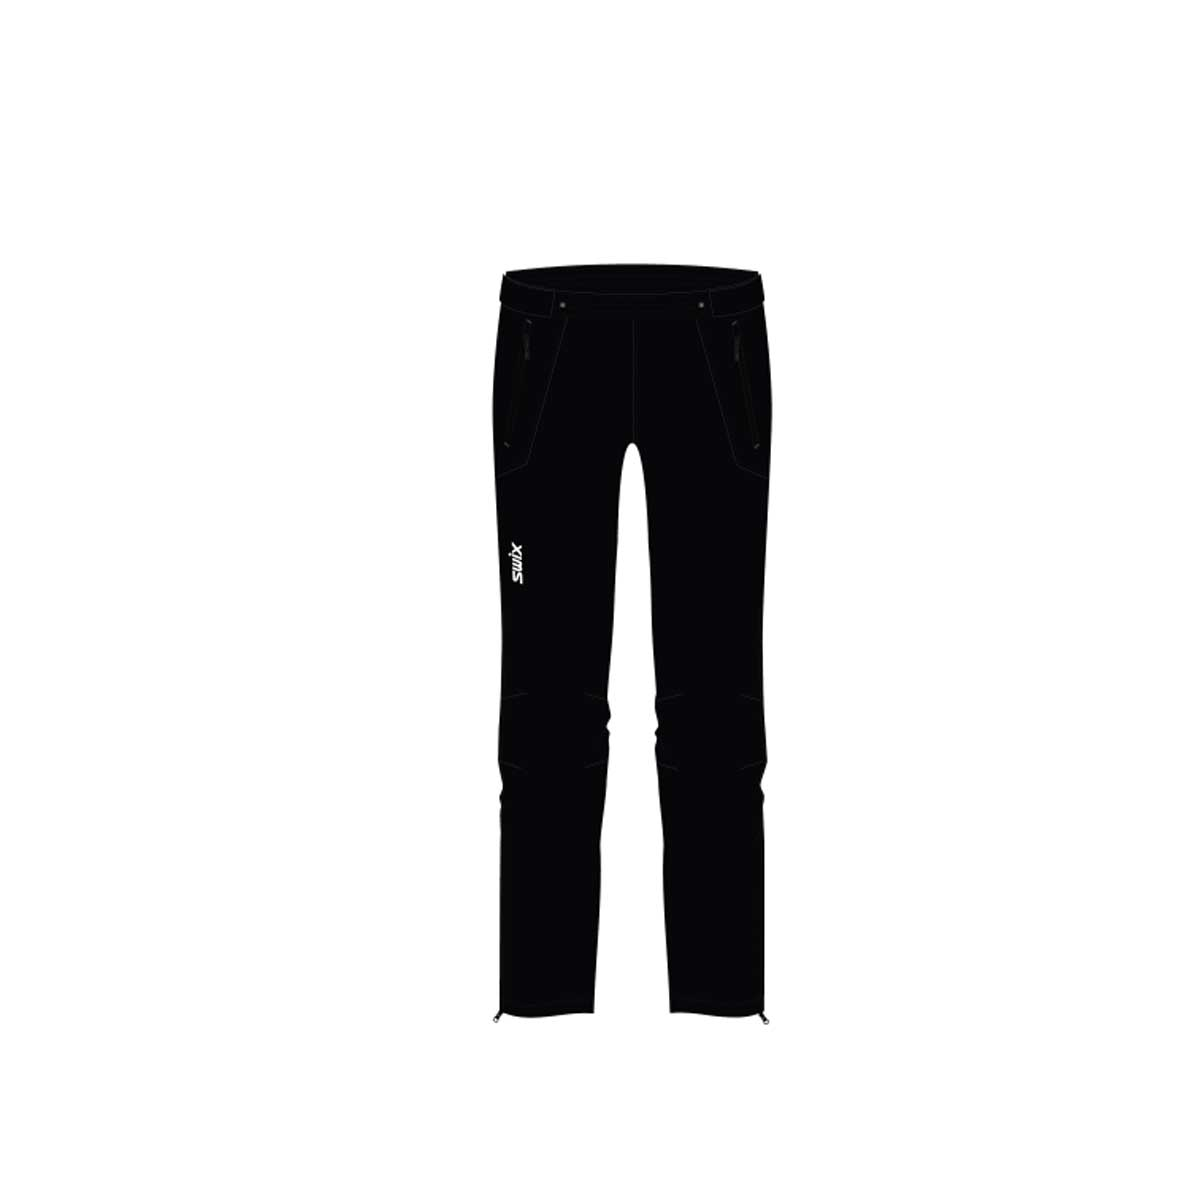 Swix Kids' Universal X Pant in Black